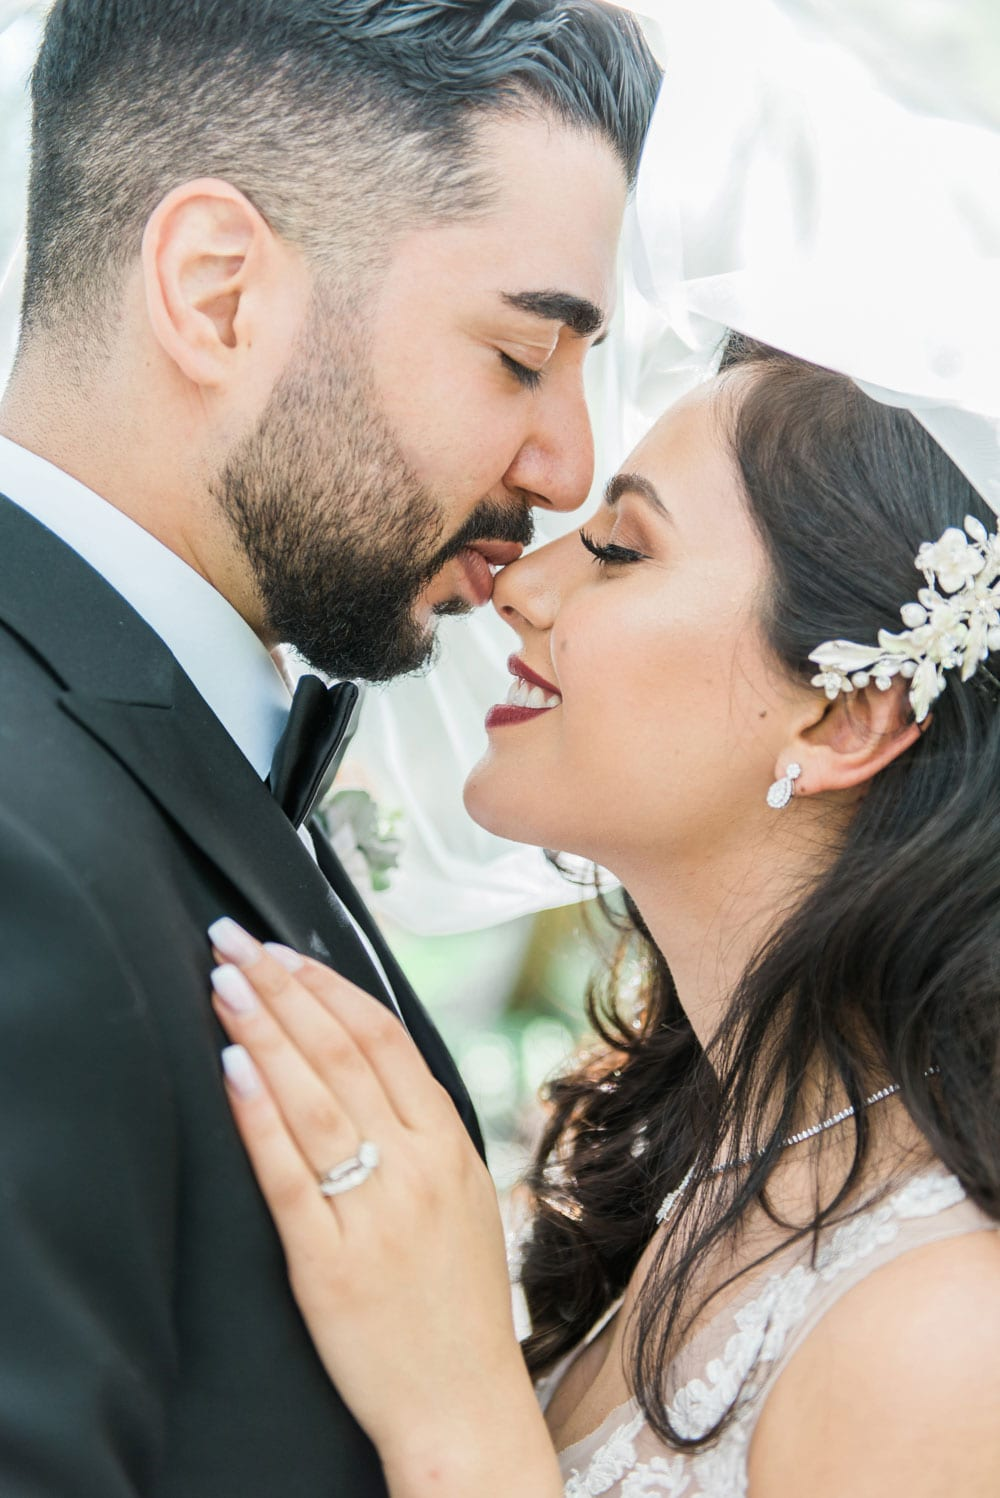 A Vintage Persian Wedding in Vancouver- Nose kiss